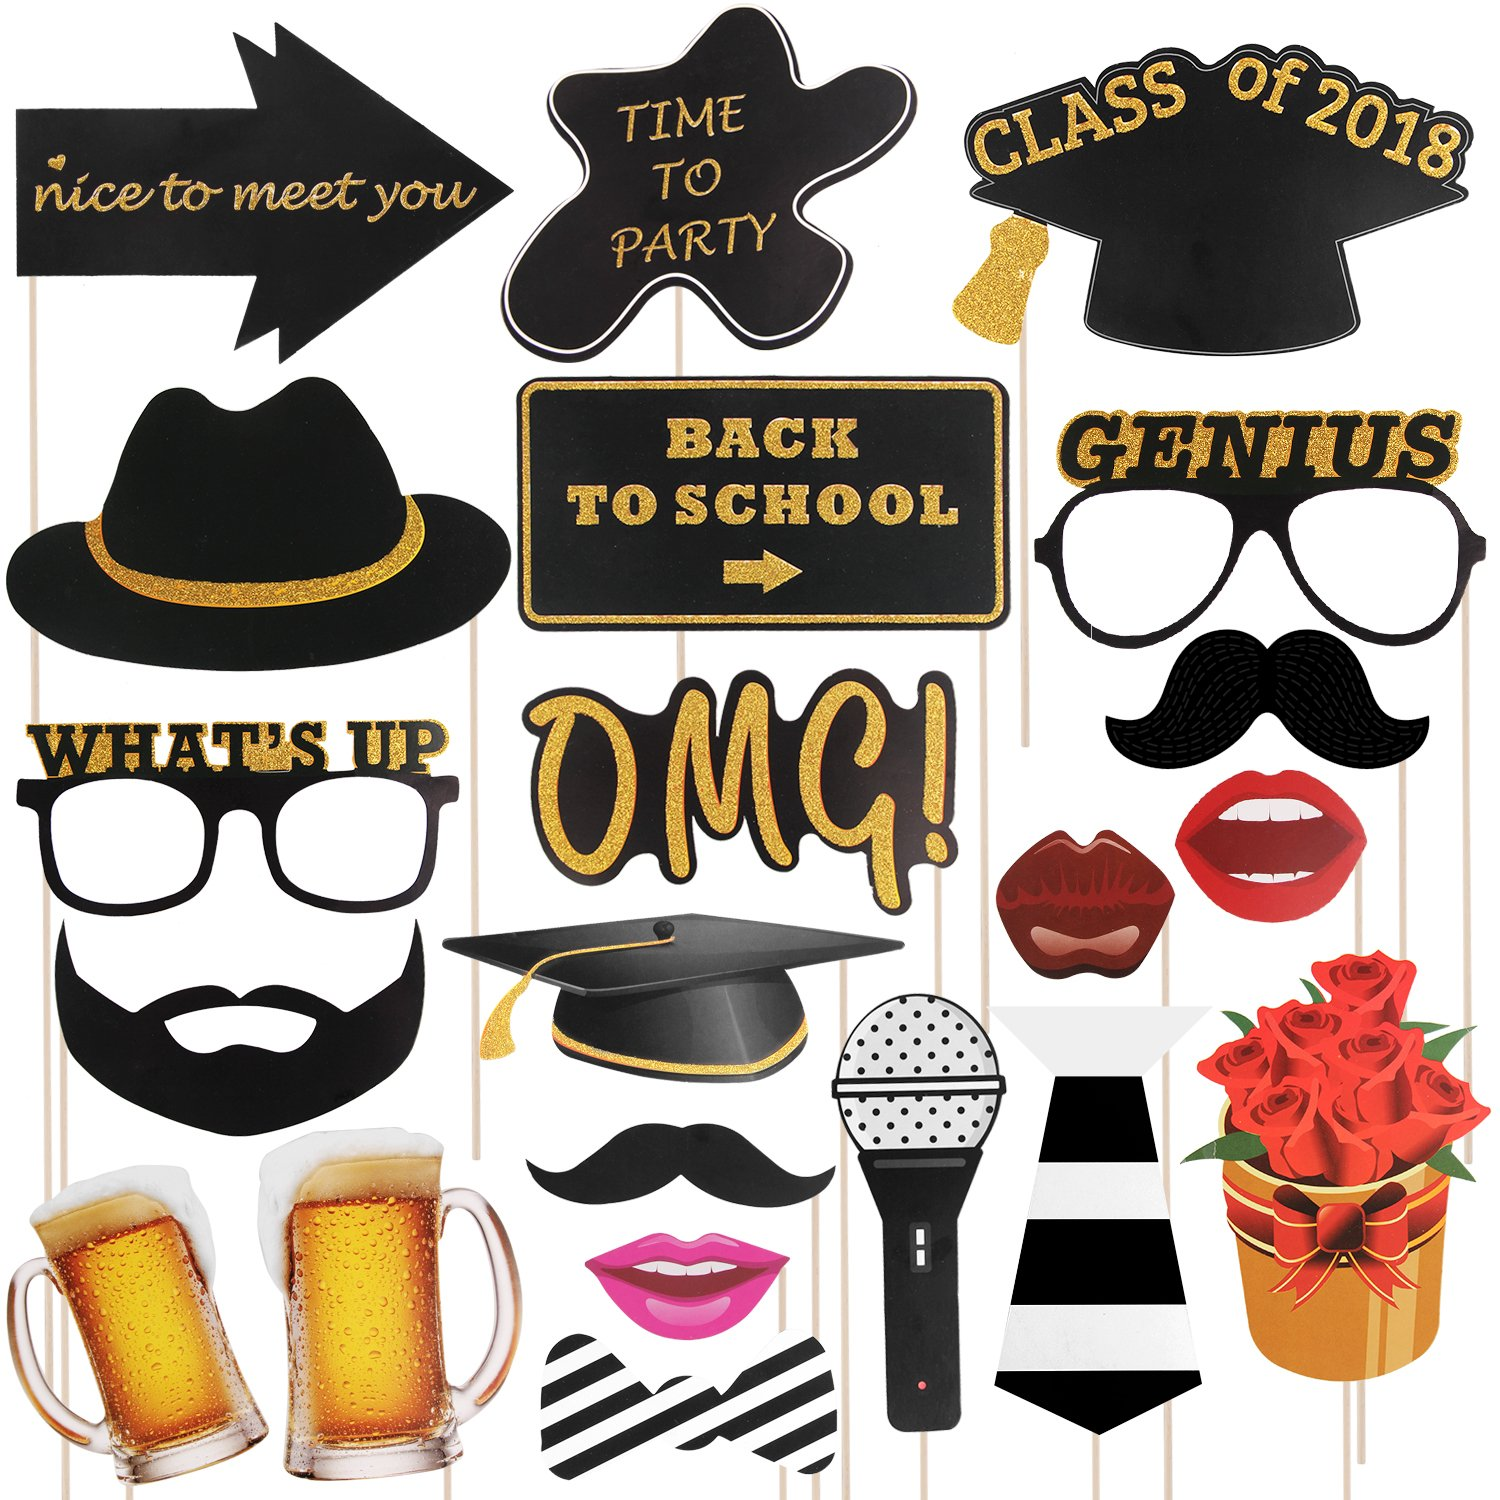 Satkago Back to School Photo Booth Prop, 21 Pcs Glitter Back To School Decorations and Photo Booth Props Kit for School Party Supplies